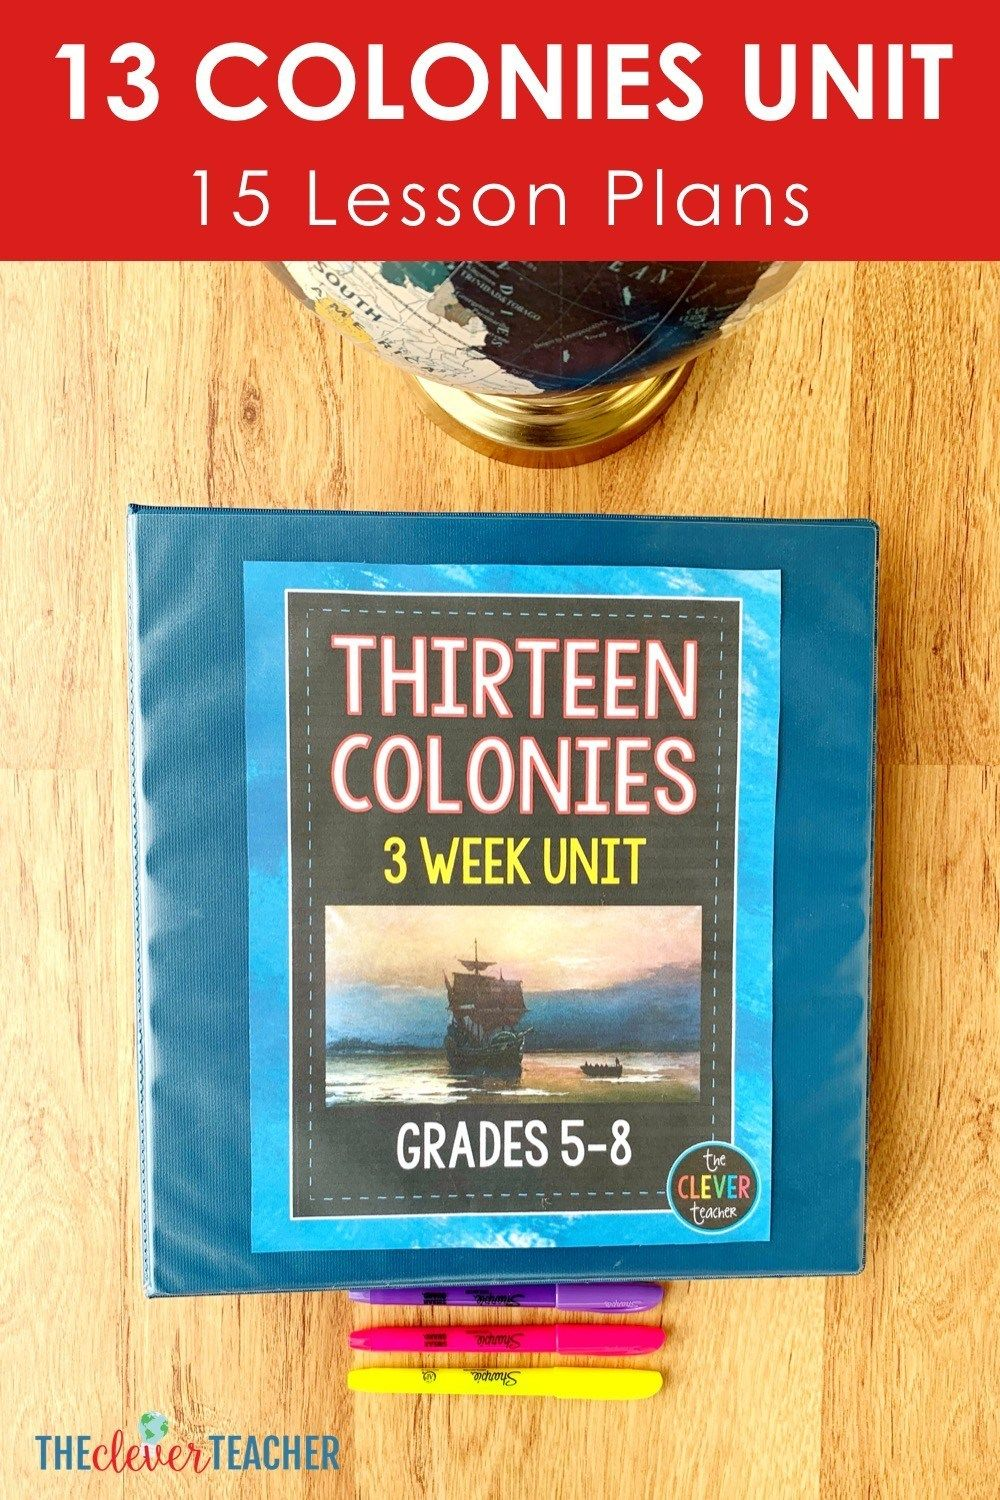 13 Colonies 3 Week Unit Distance Learning For Google Classroom The Clever Teacher In 2020 13 Colonies Unit 13 Colonies 13 Colonies Lessons [ 1500 x 1000 Pixel ]